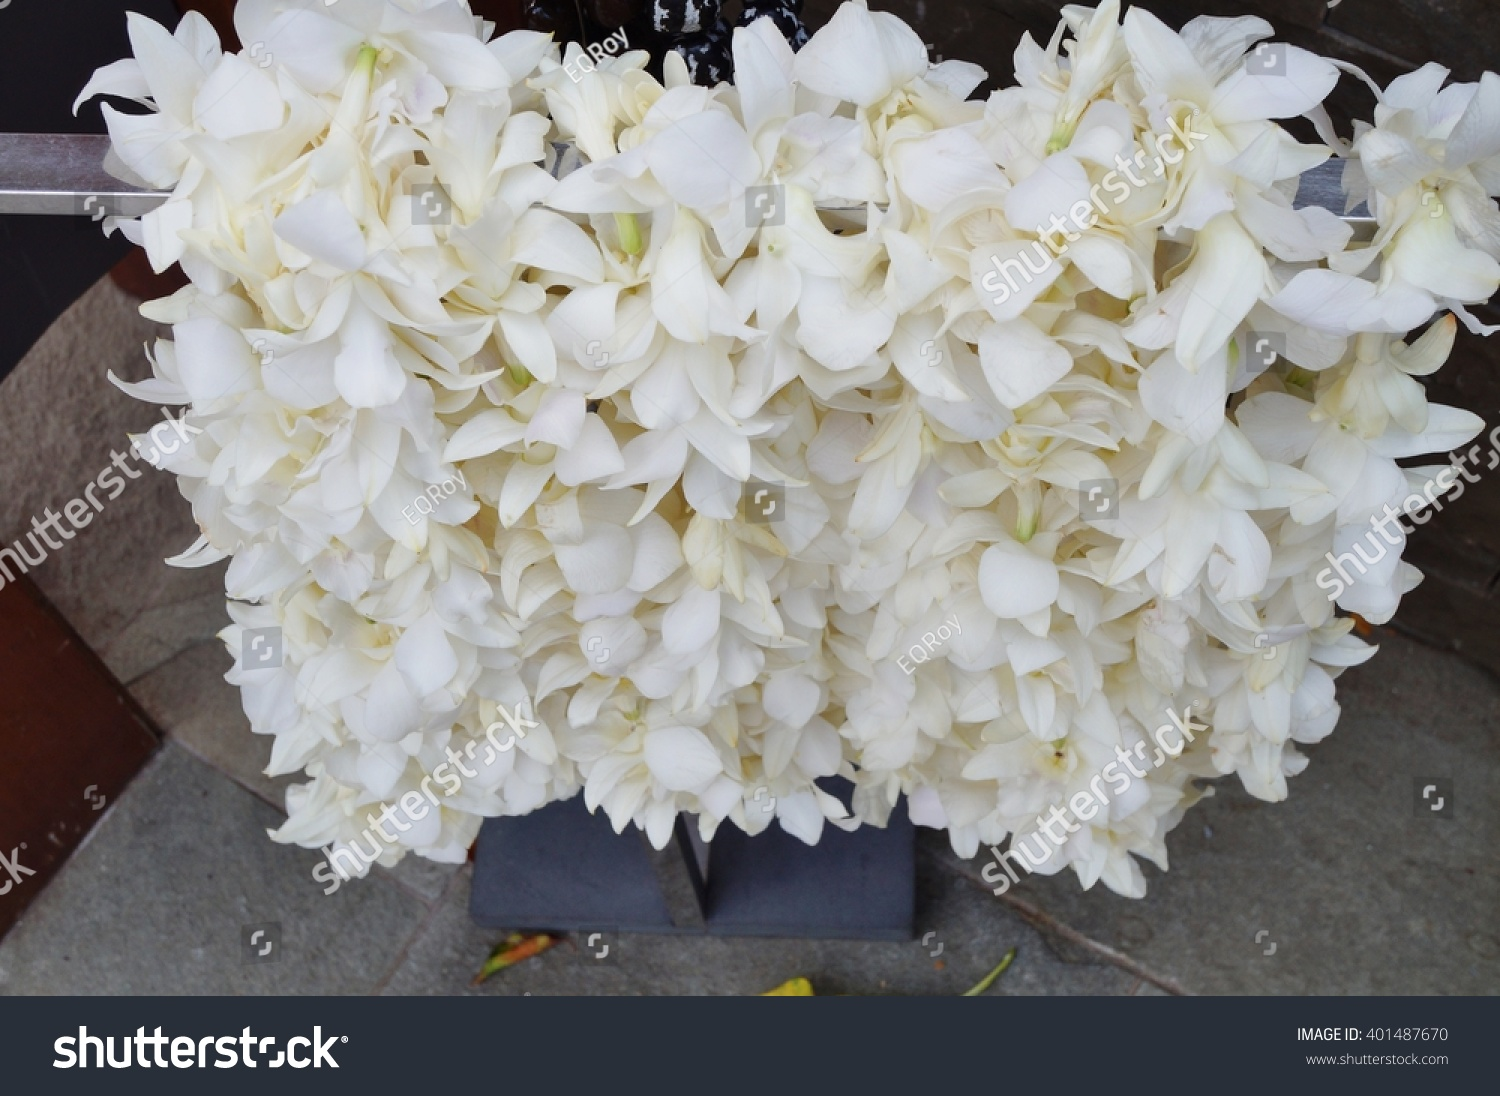 Royalty Free Fragrant White Tuberose Flower And 401487670 Stock